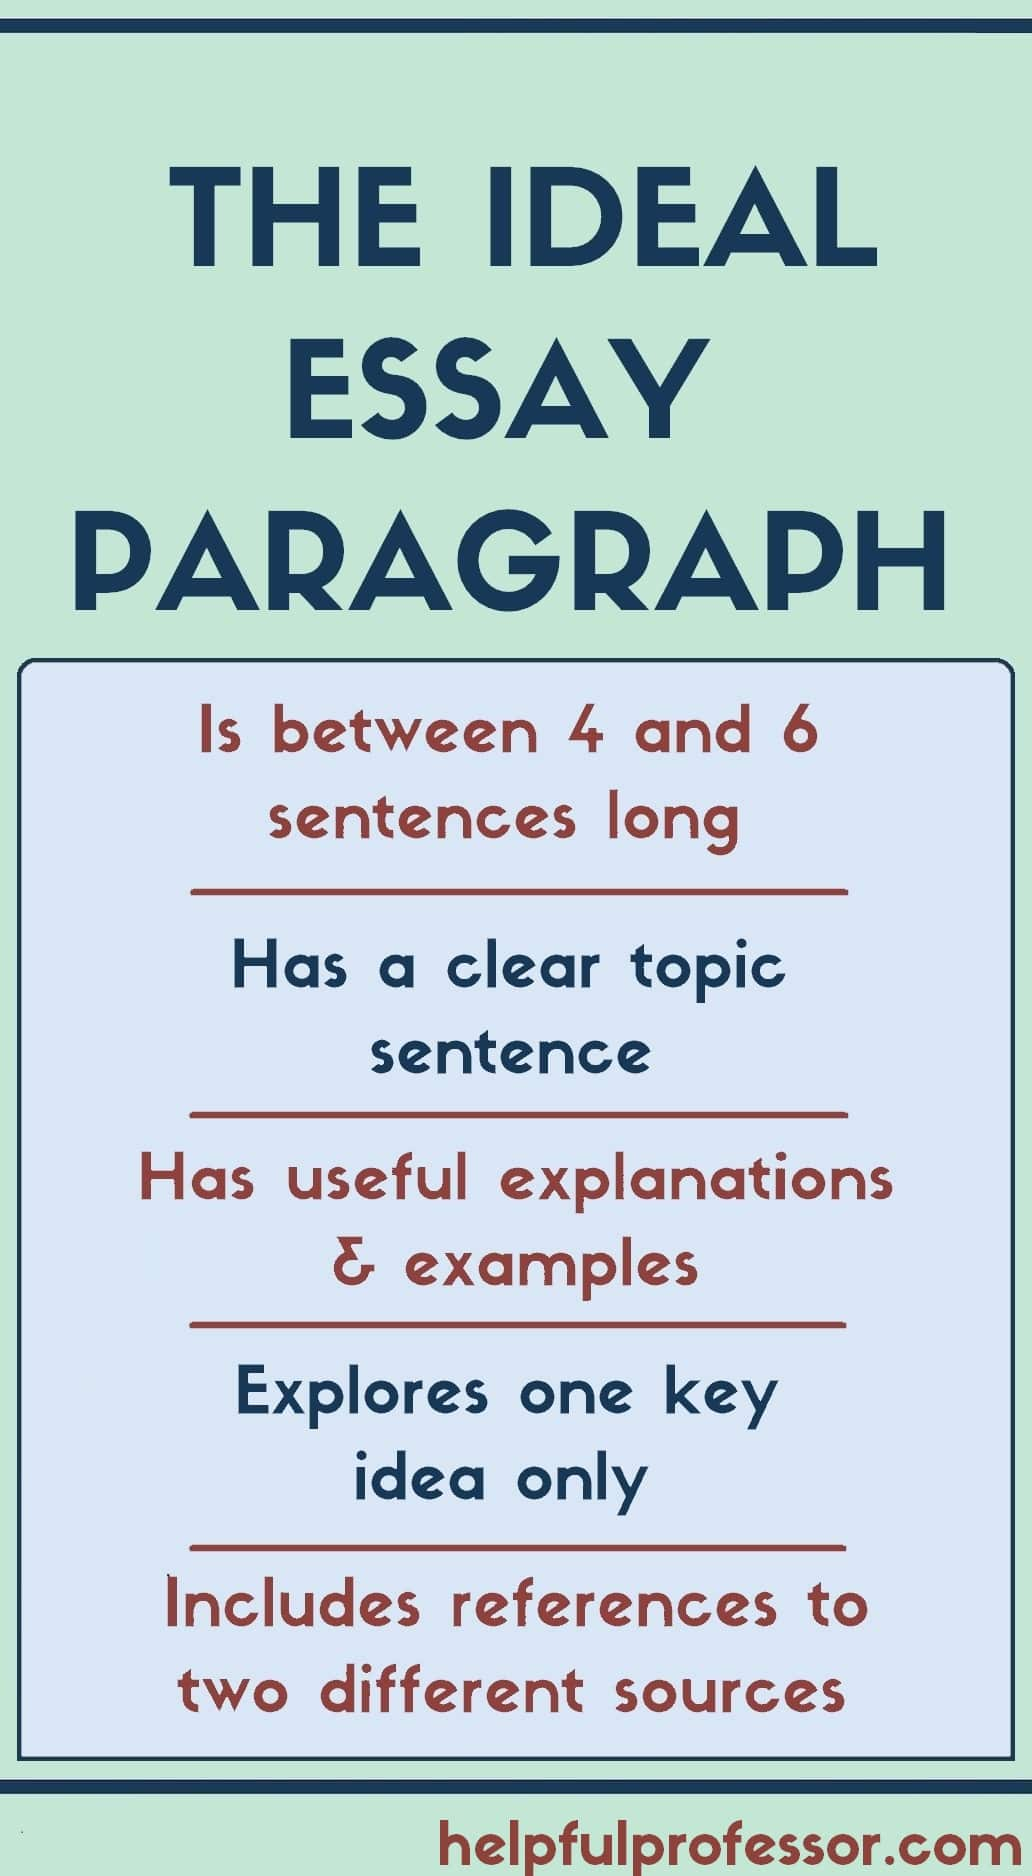 The basic essay paragraph structure formula includes: 4-6 sentence paragraphs; a clear topic sentence; useful explanations and examples; a focus on one key idea only; and references to two different academic sources.